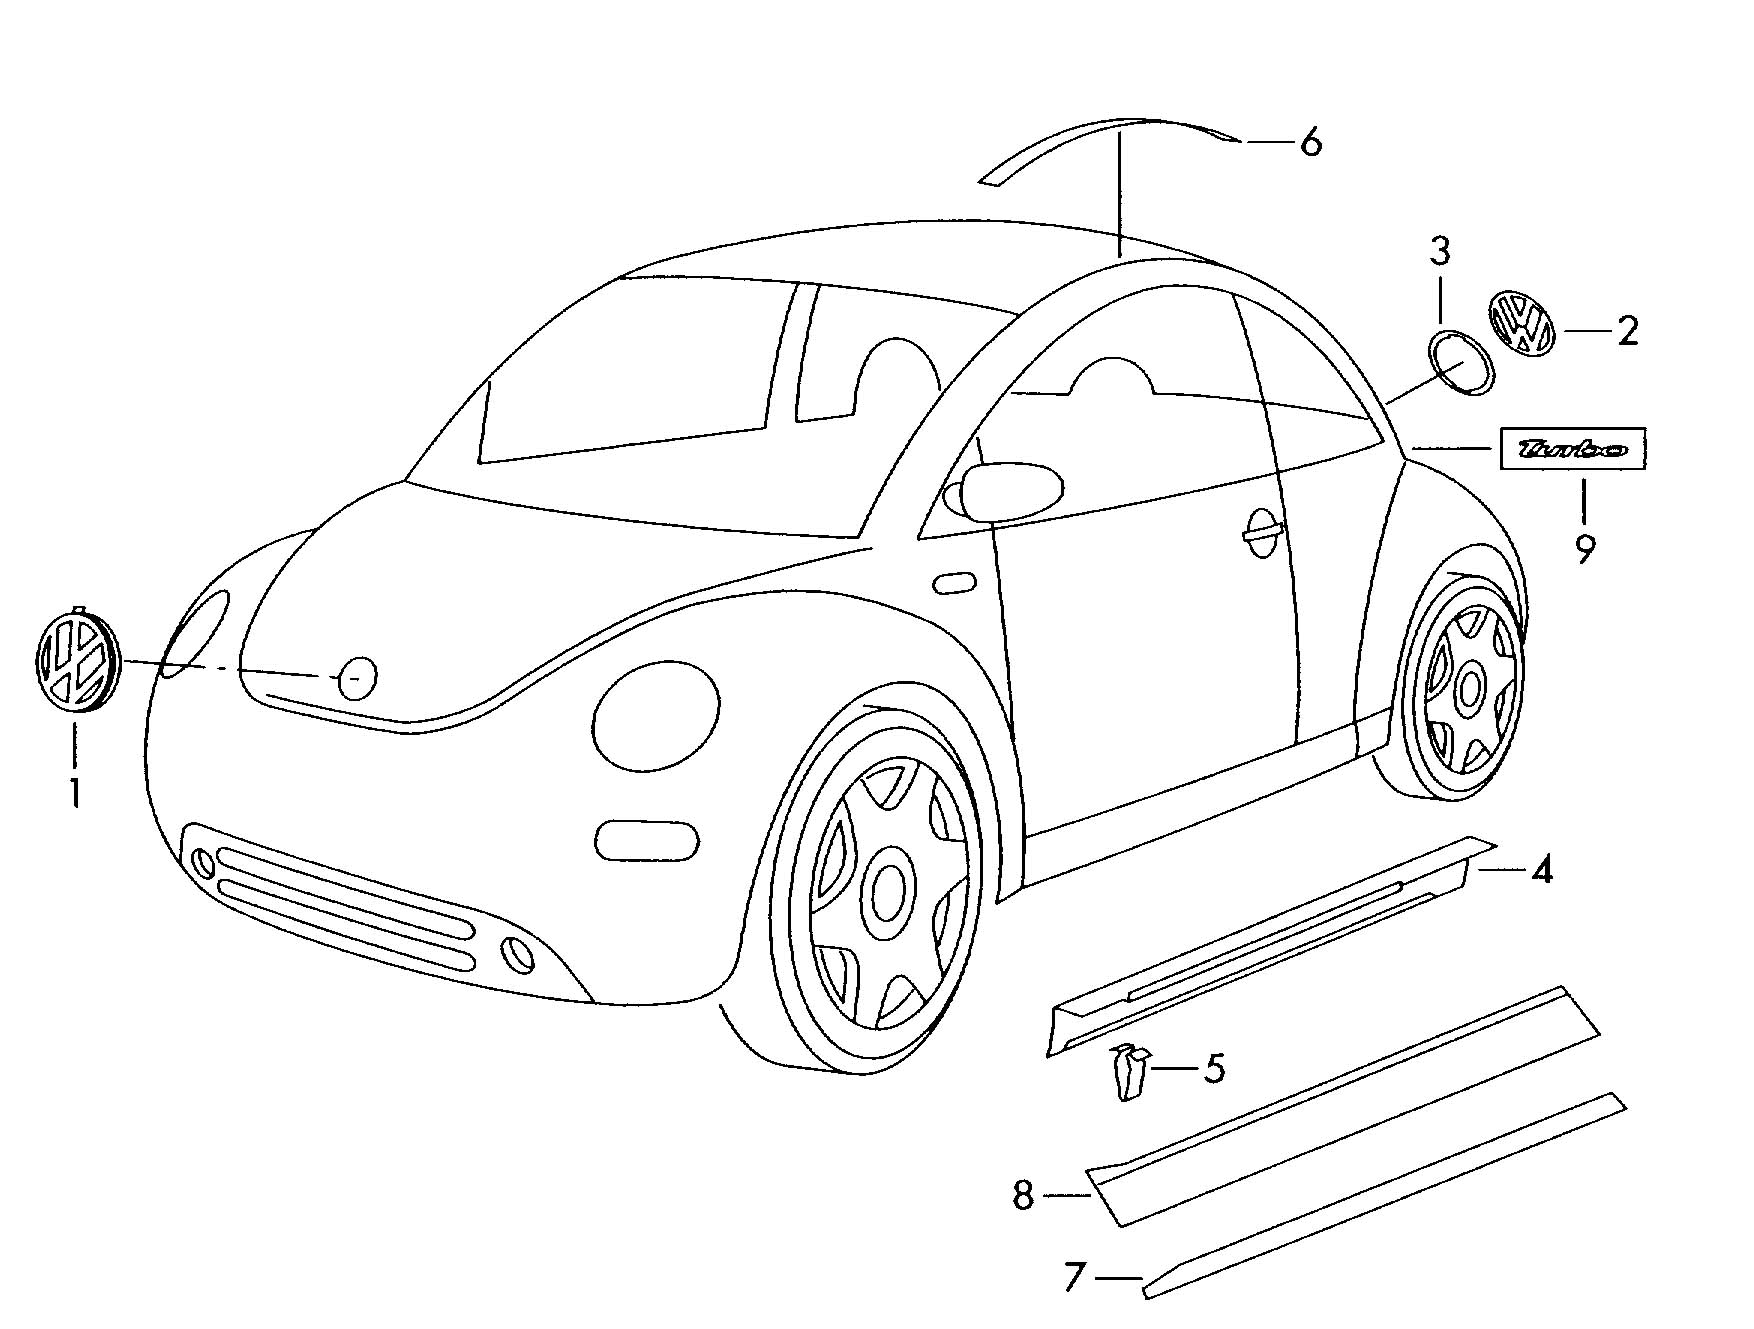 Viewtopic as well Diagram02j 311 further ShowAssembly together with 2 moreover Fj40 Wiring Diagrams. on 62 vw beetle parts